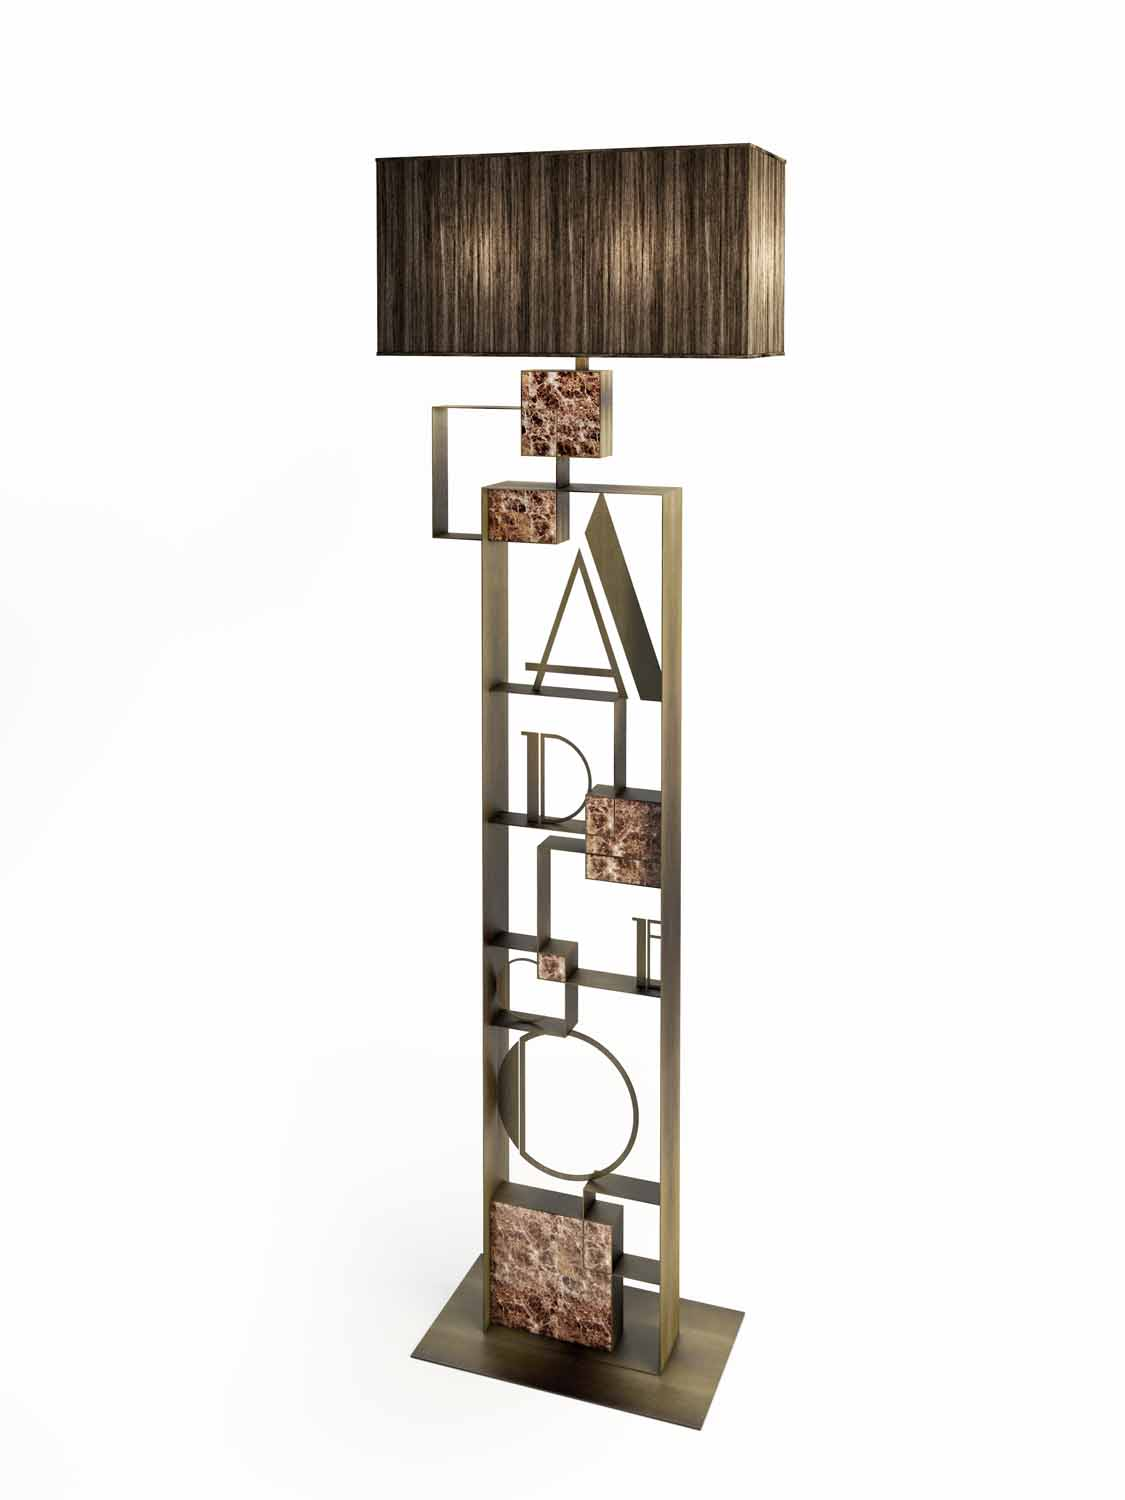 A DECO FLOOR LAMP